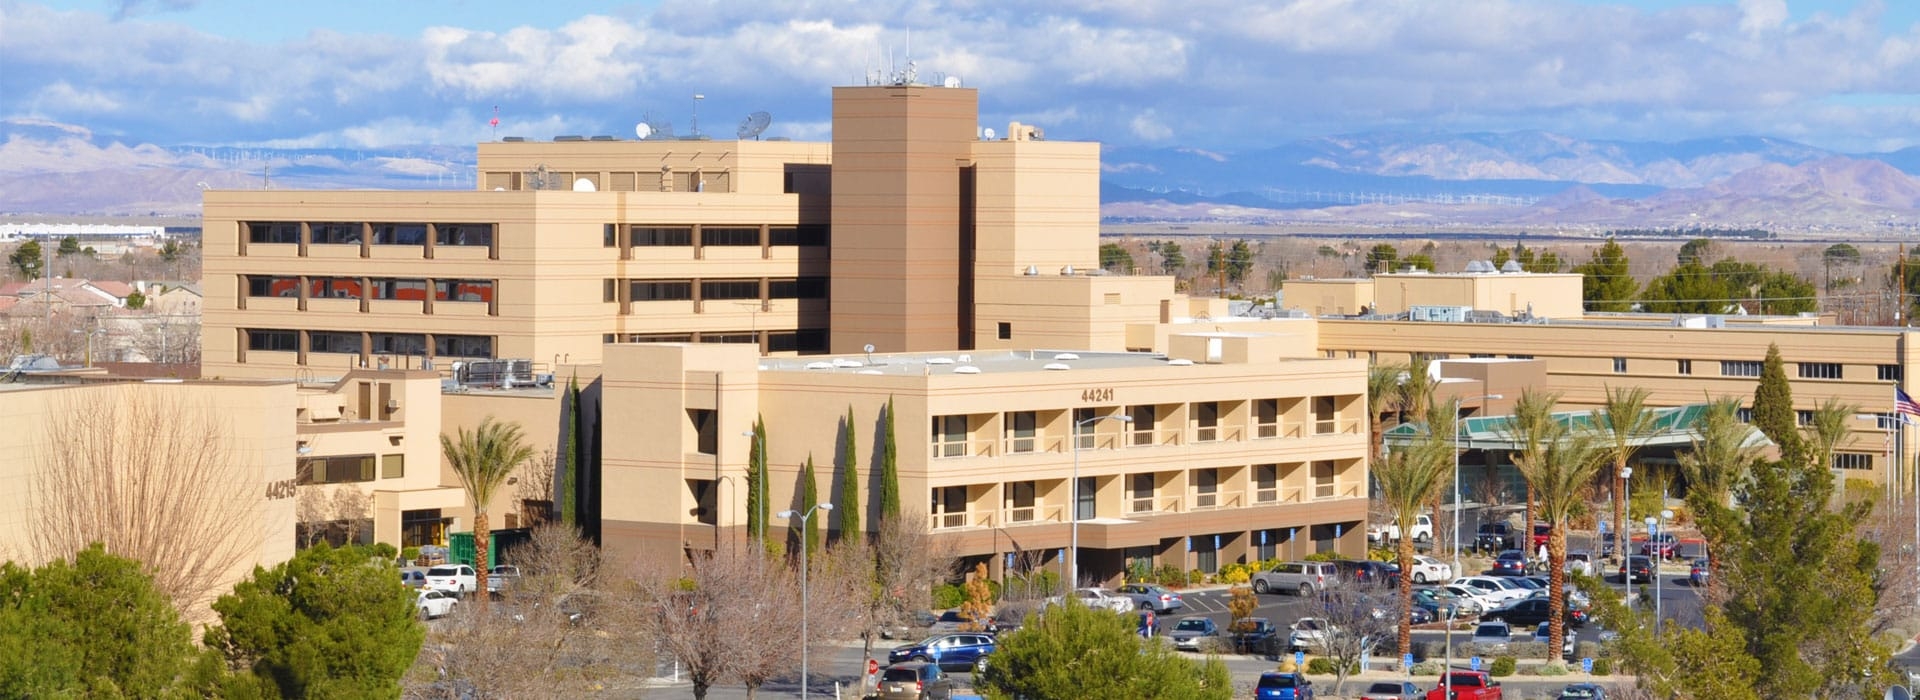 Antelope Valley Hospital Center Line Electric